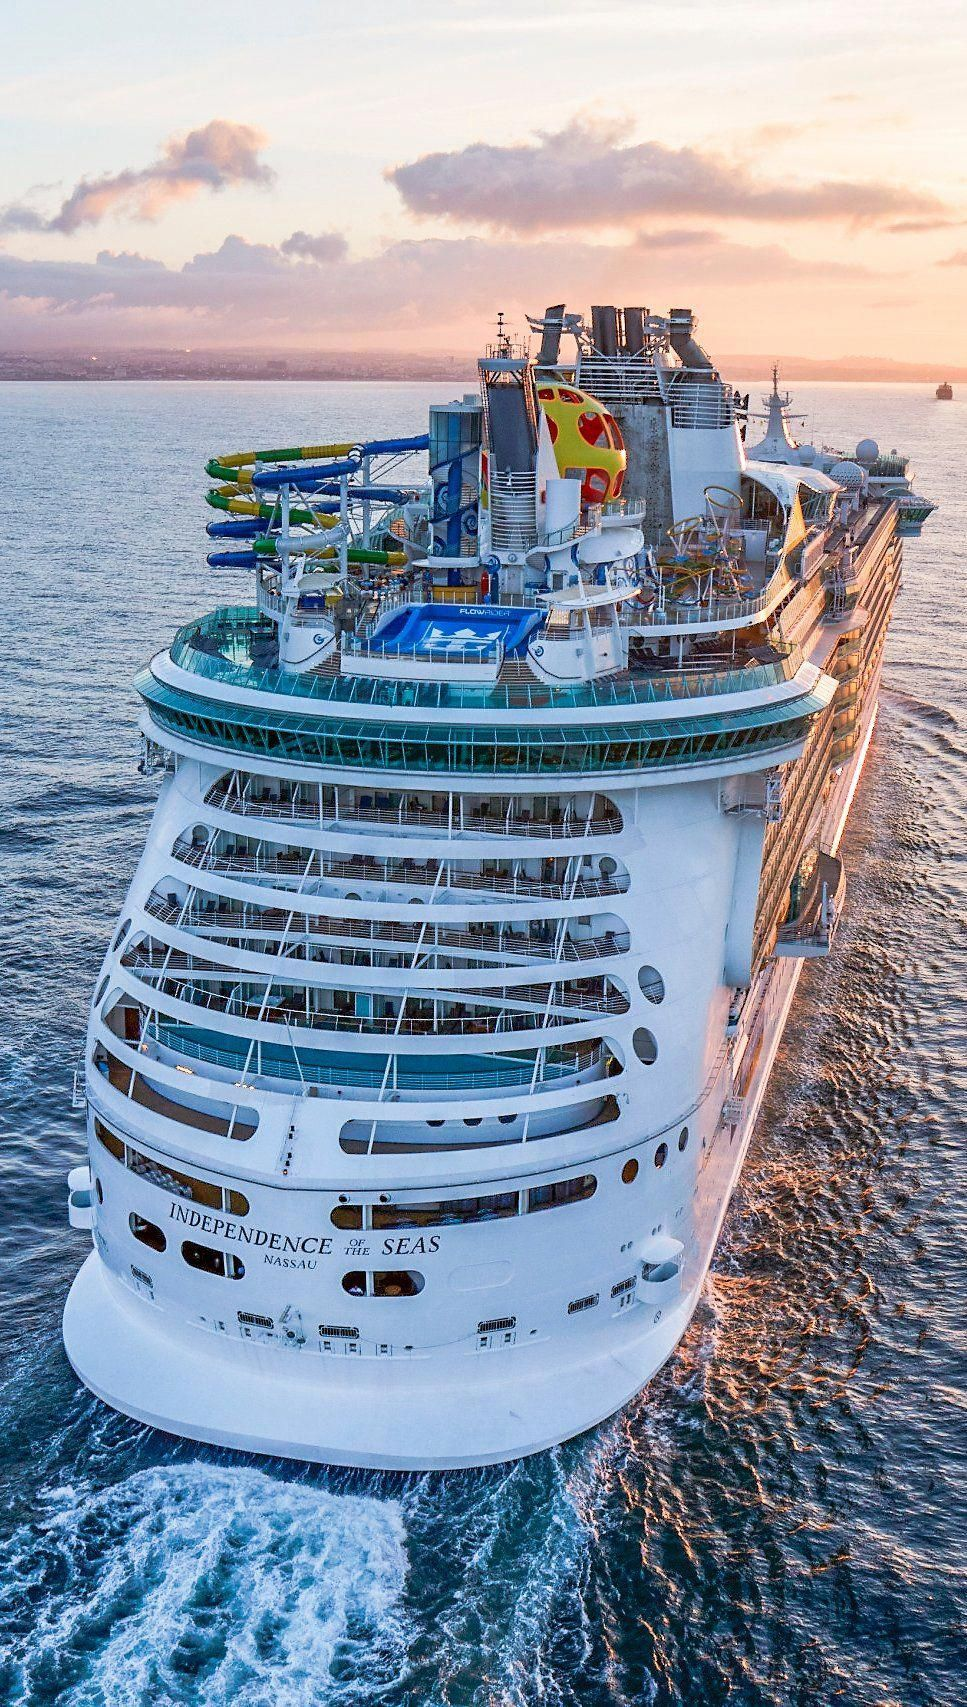 Independence Of The Seas Set Sail On The Entirely Reimagined And Redesigned Independenc Royal Caribbean Cruise Royal Caribbean Ships Independence Of The Seas